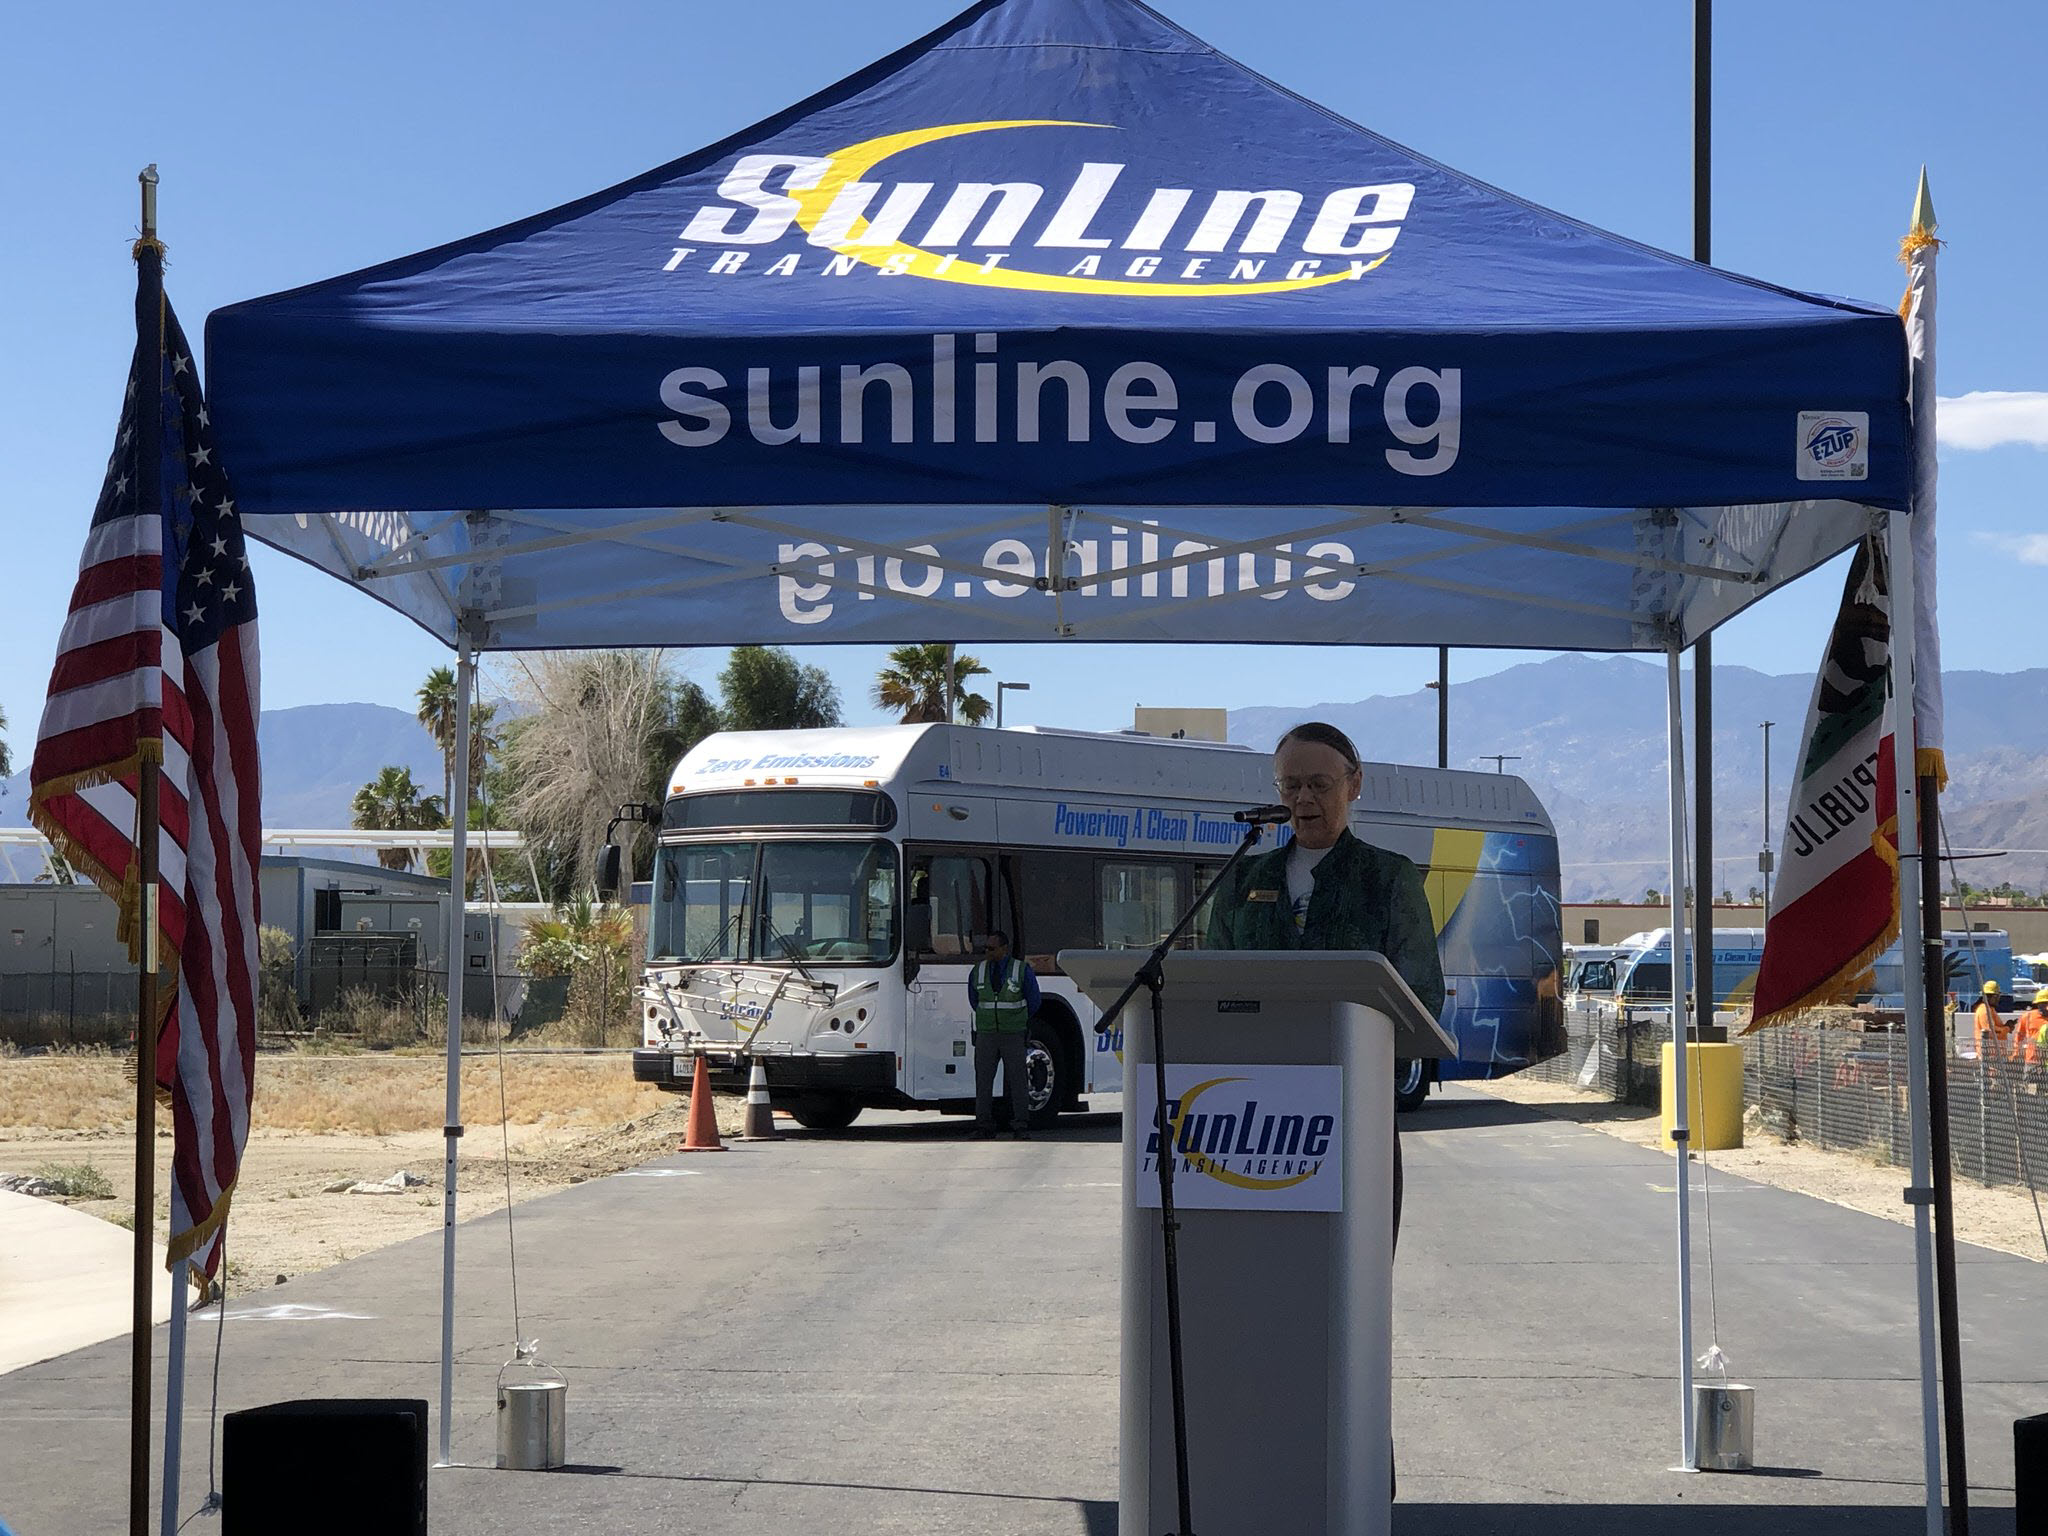 Sunline Earth Day 5 New Fuel Cell Buses1